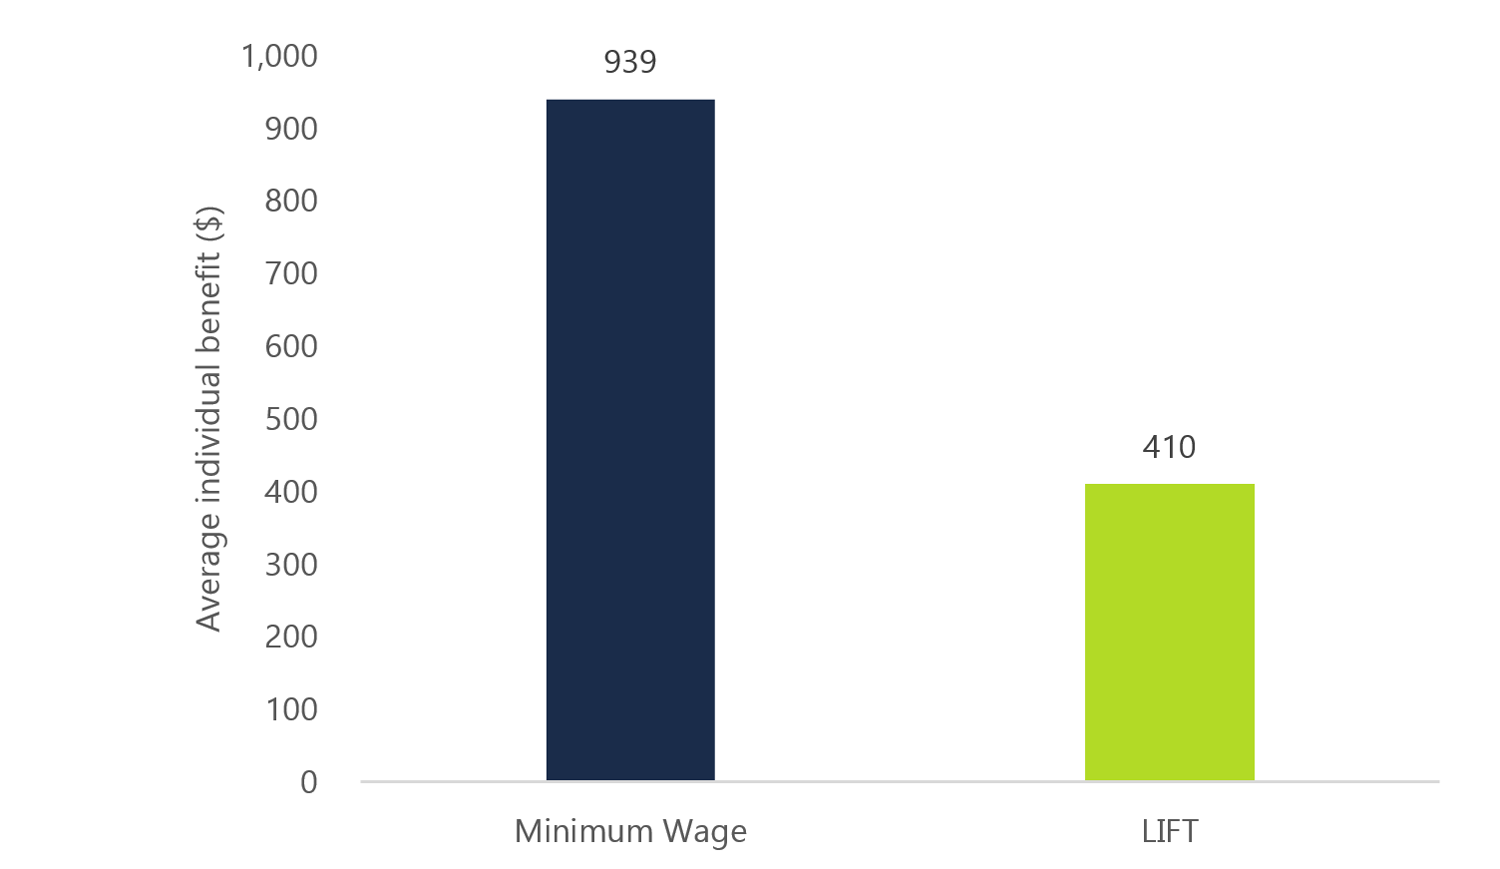 Minimum wage earners that receive the LIFT credit would have been better off with an increase in the minimum wage to $15 per hour